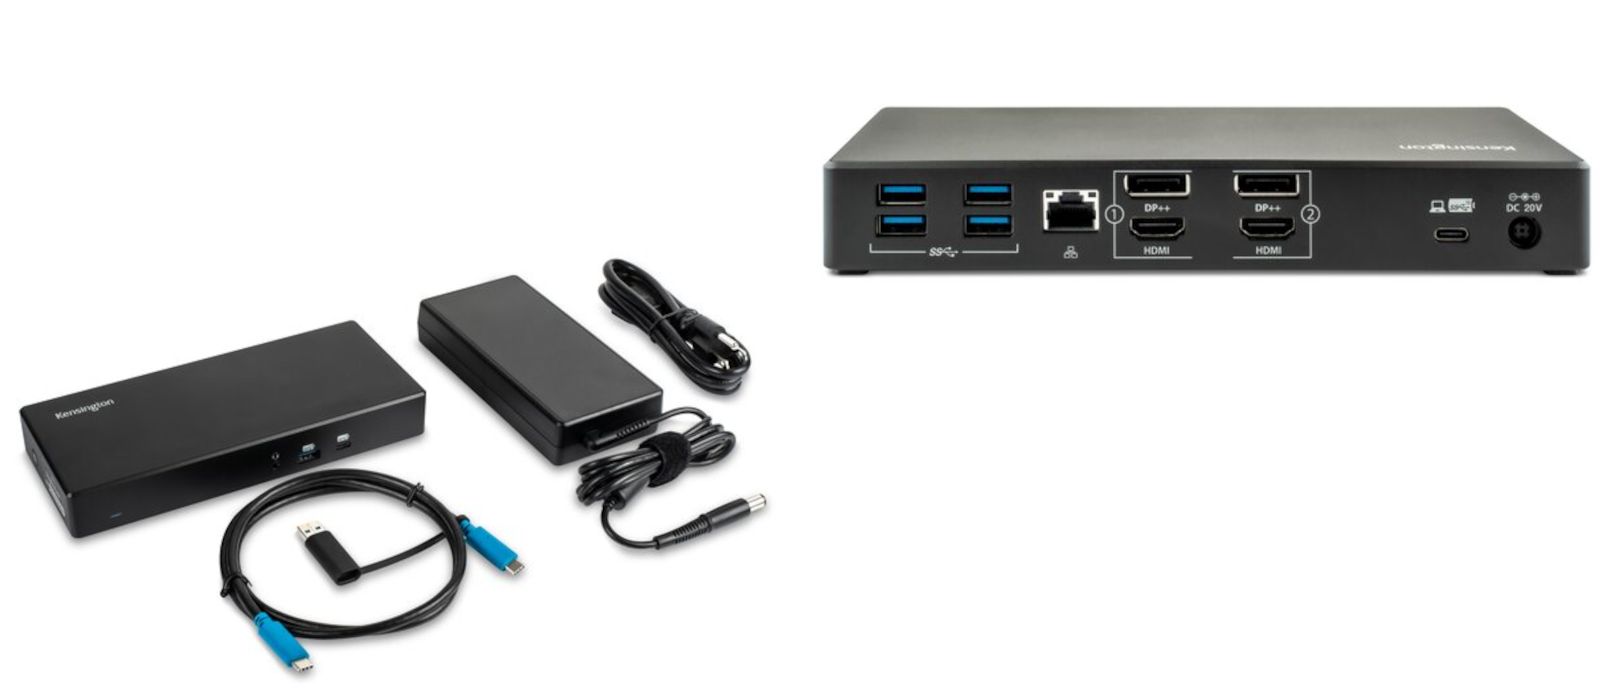 Two pictures show the overall view of the Kensington USB-C Dual 4K Docking Station including cables as well as the rear view of the docking station